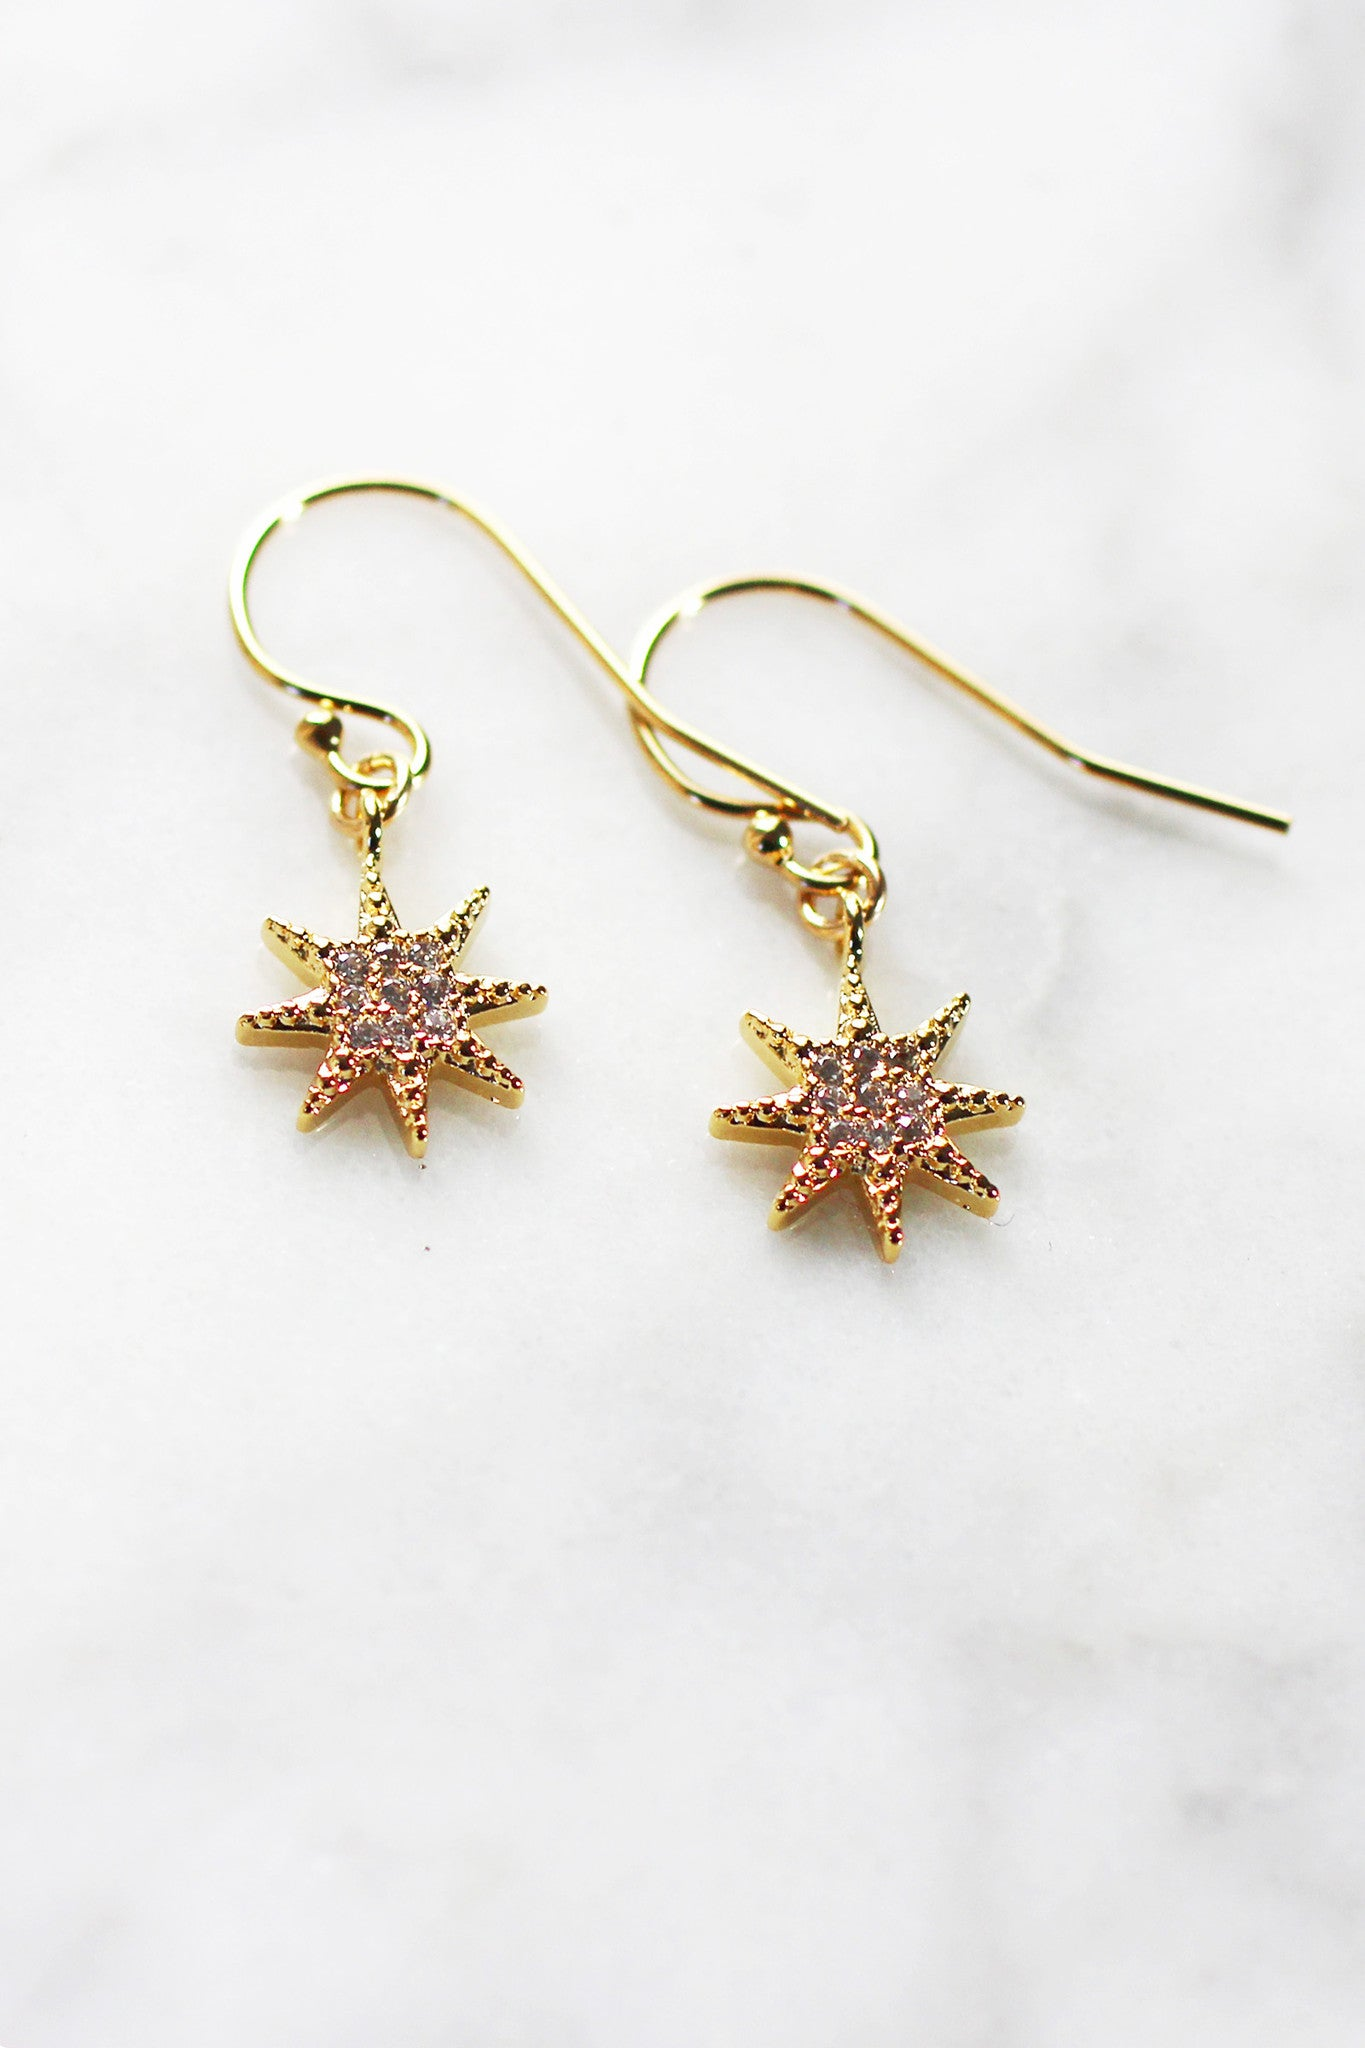 STARBRITE DROP EARRINGS - Christine Elizabeth Jewelry™ - Glamour and Glow